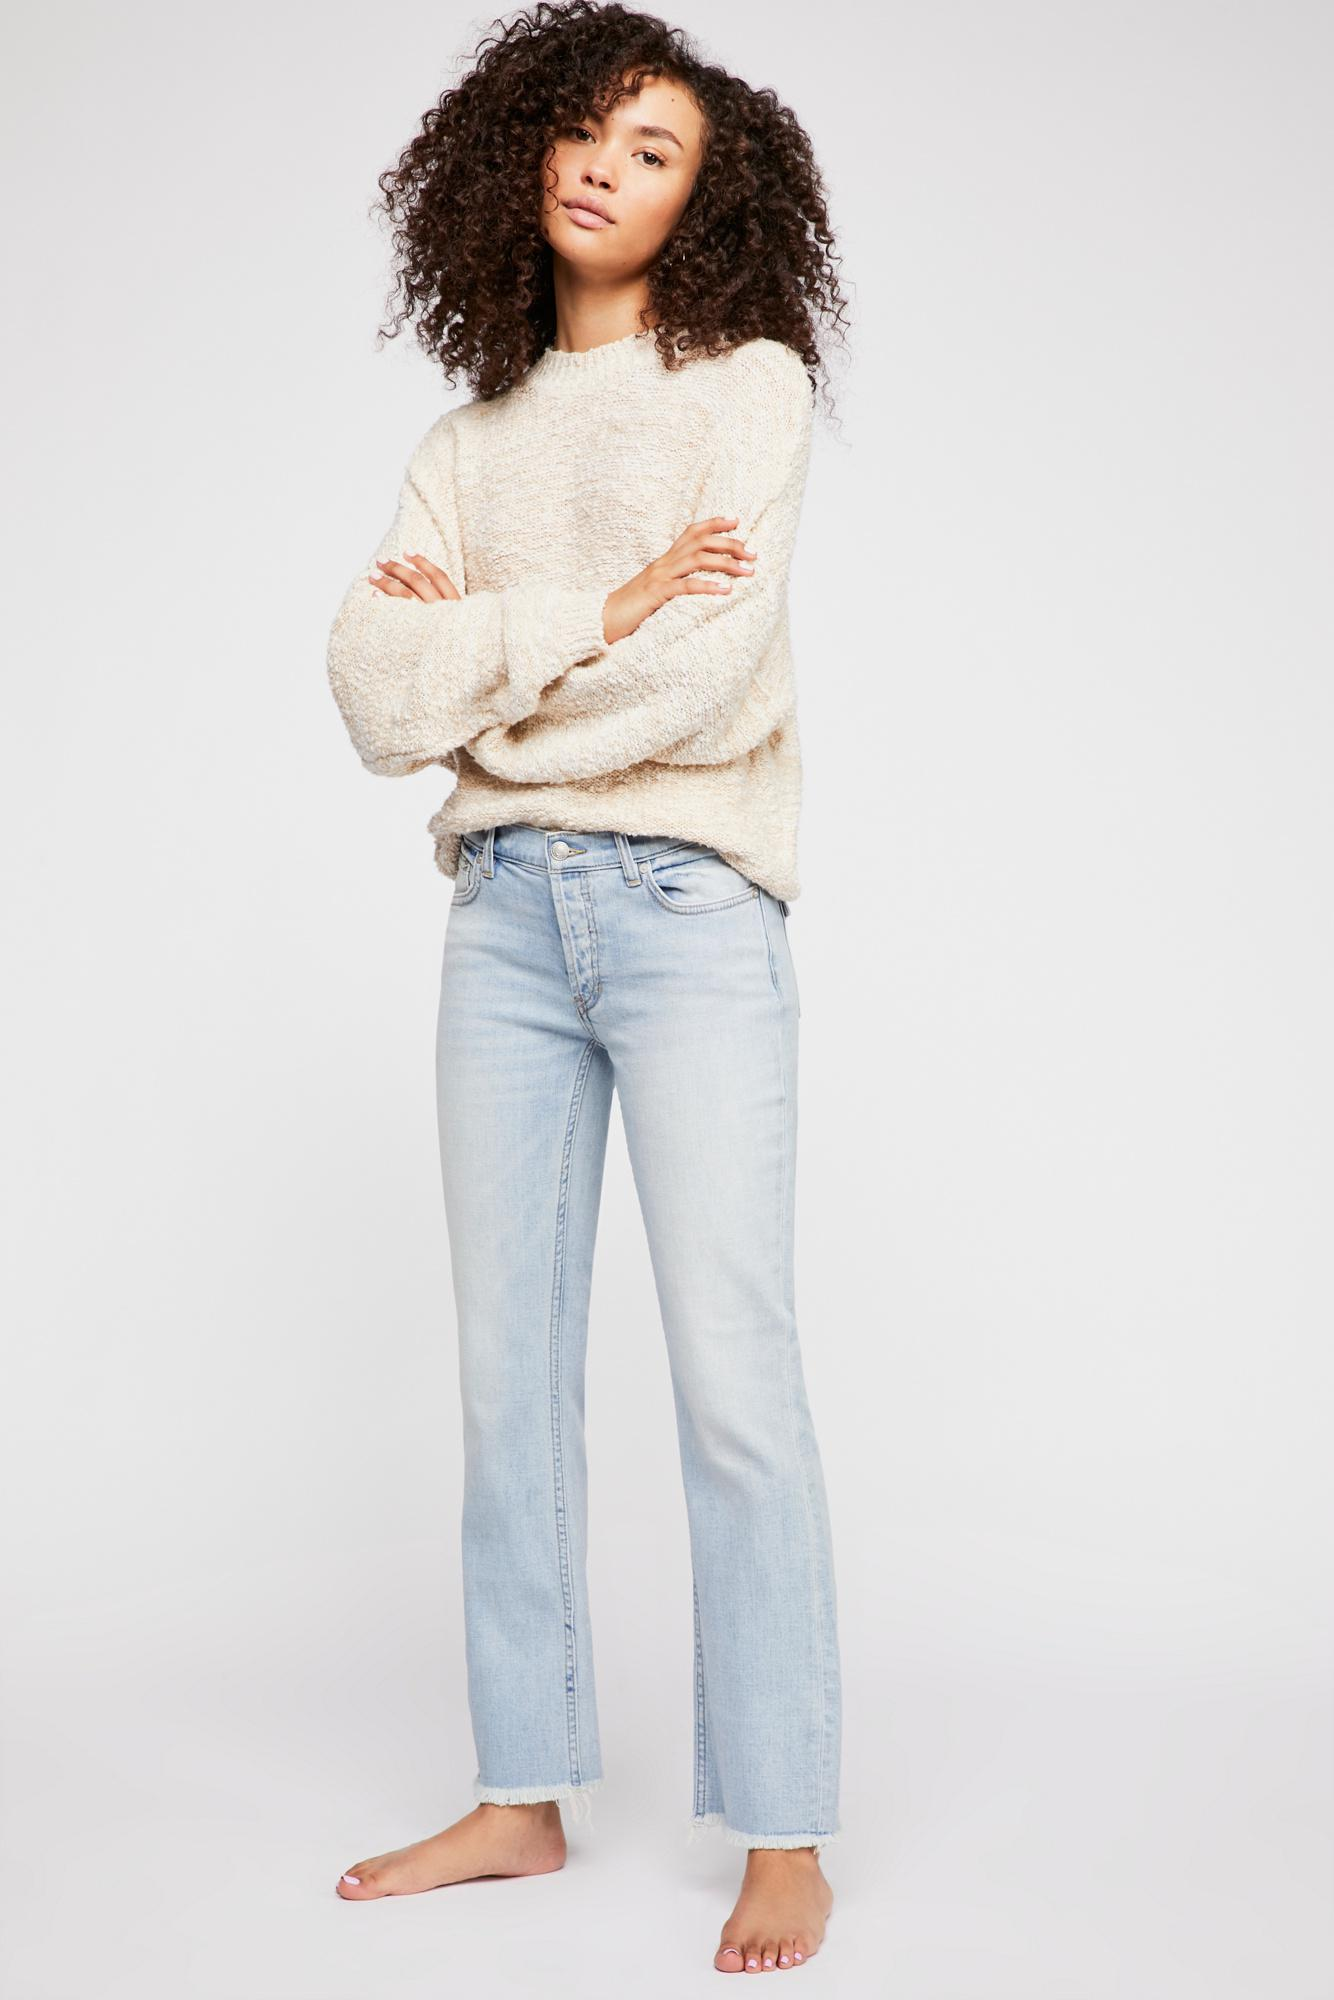 Free People Denim Austen Straight-leg Jeans in Blue